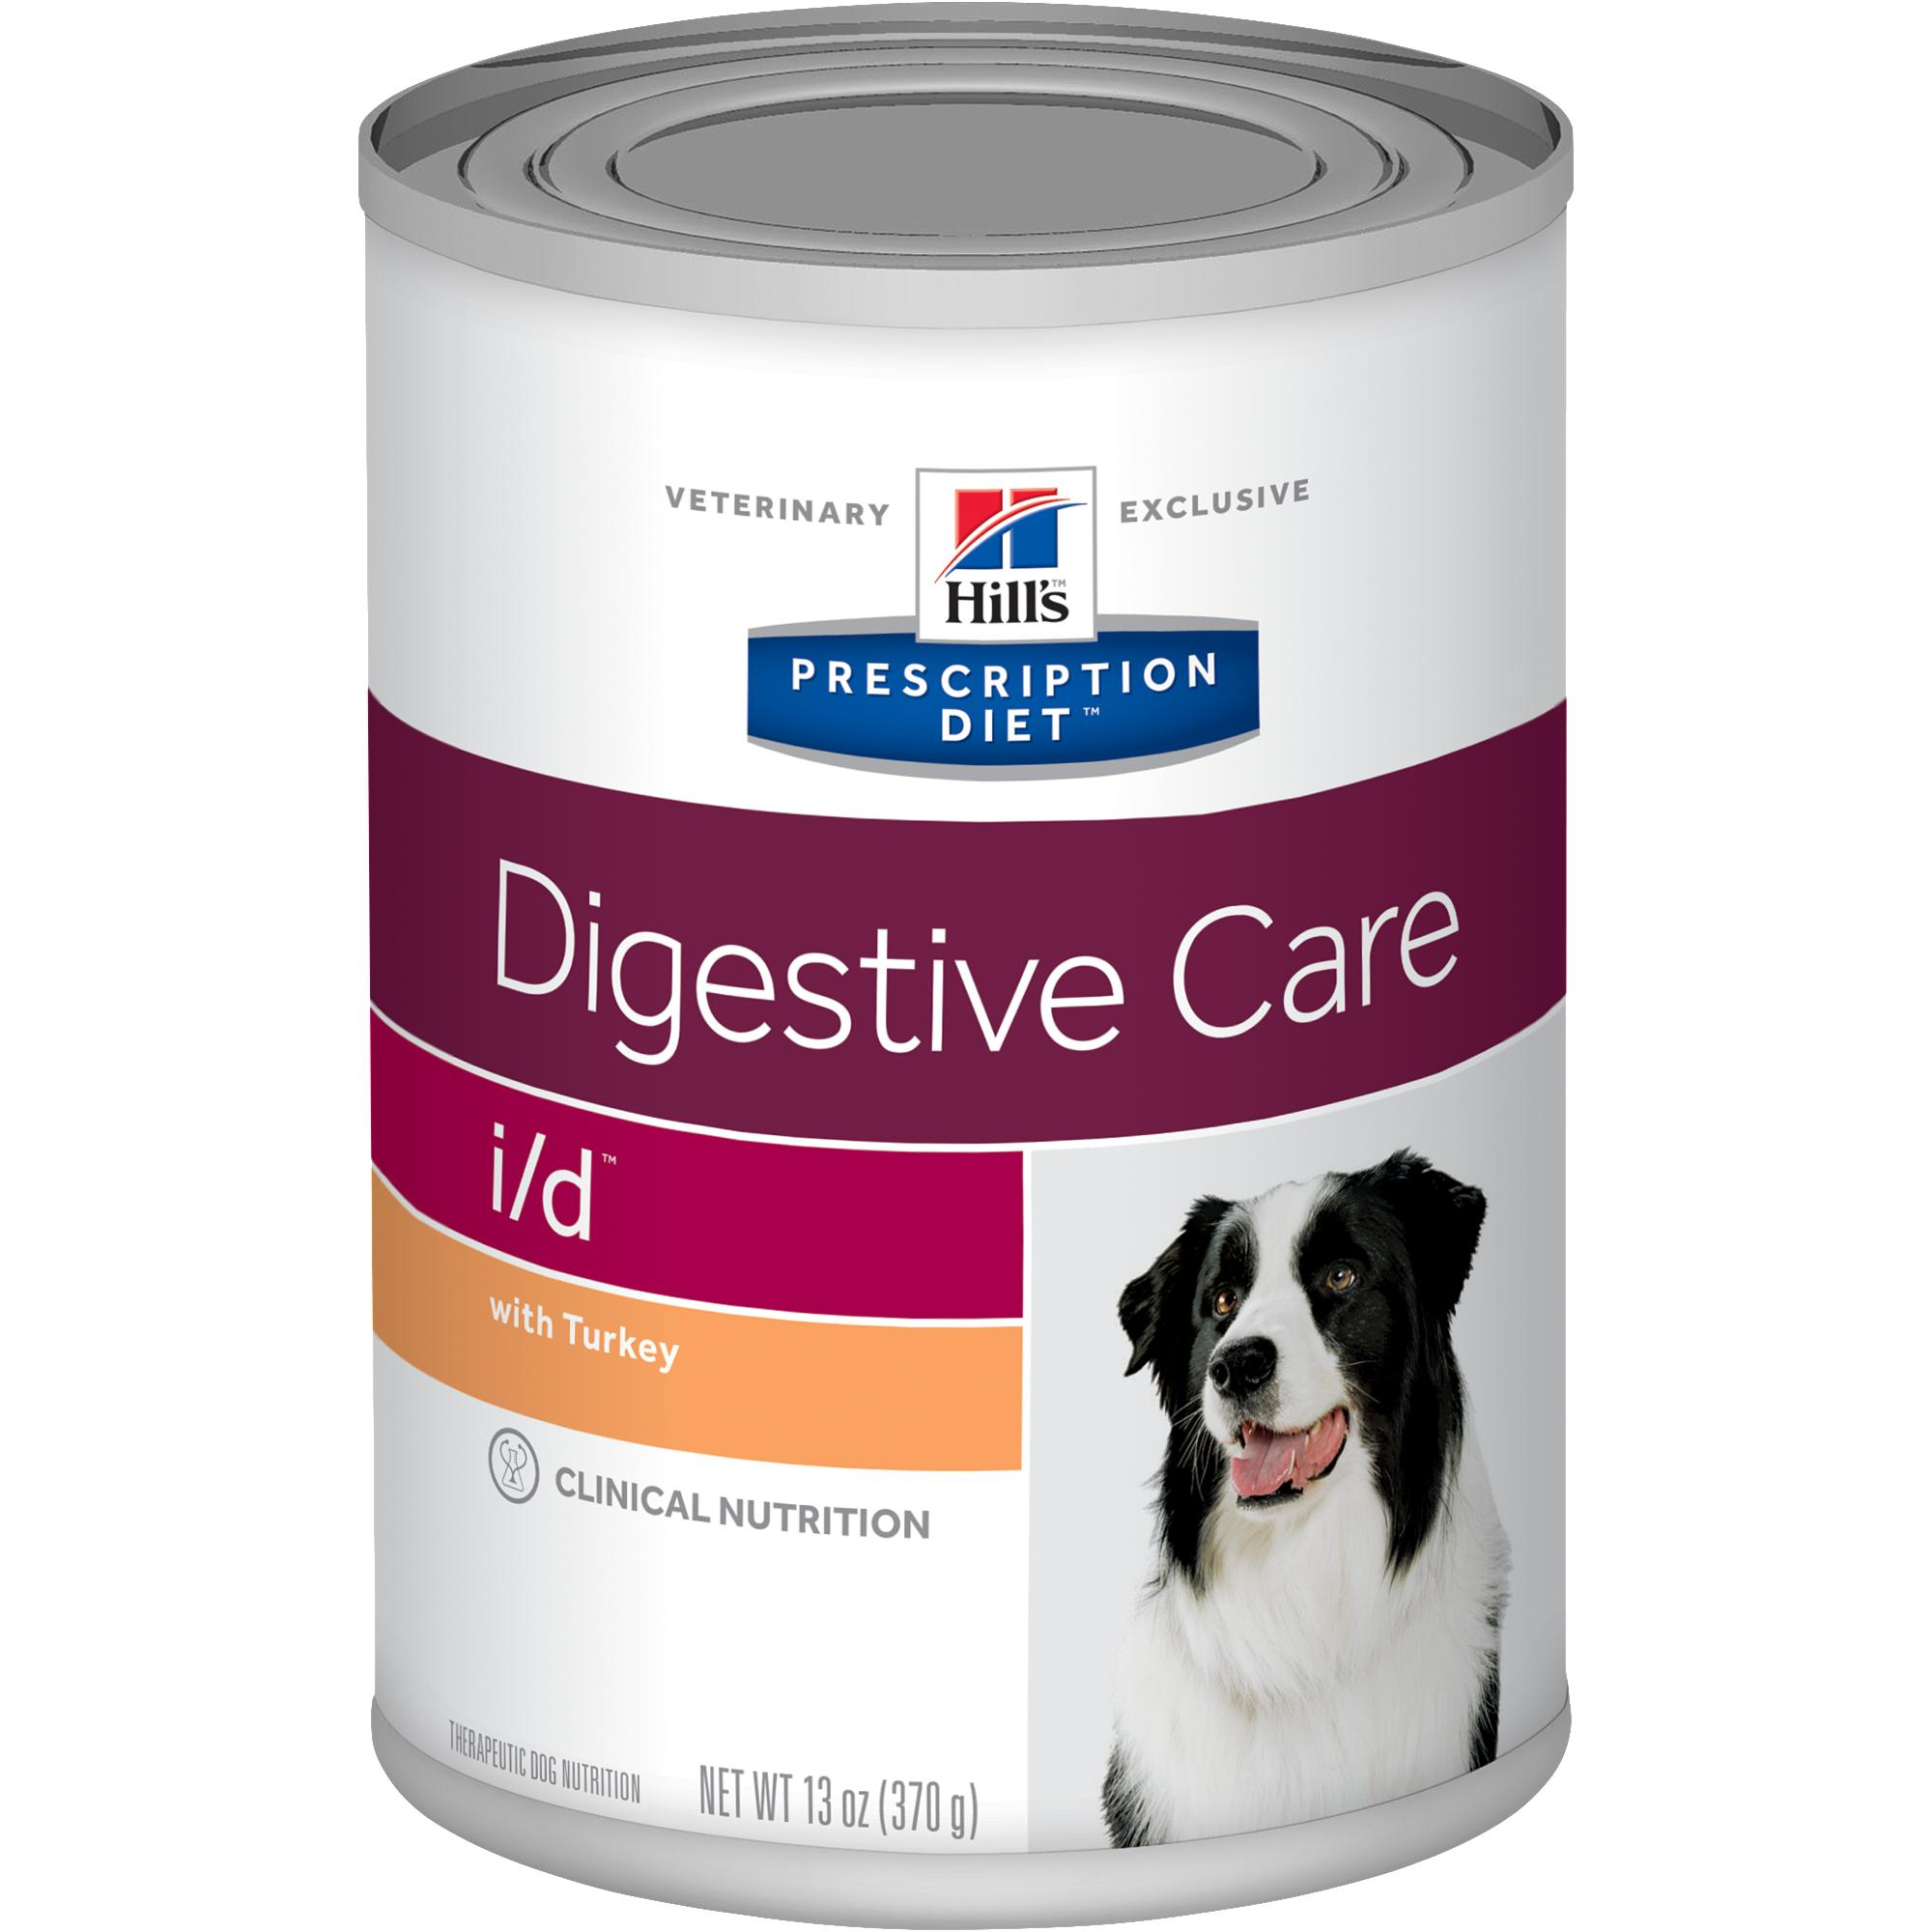 Hill's Prescription Diet i/d Canine Turkey 7008